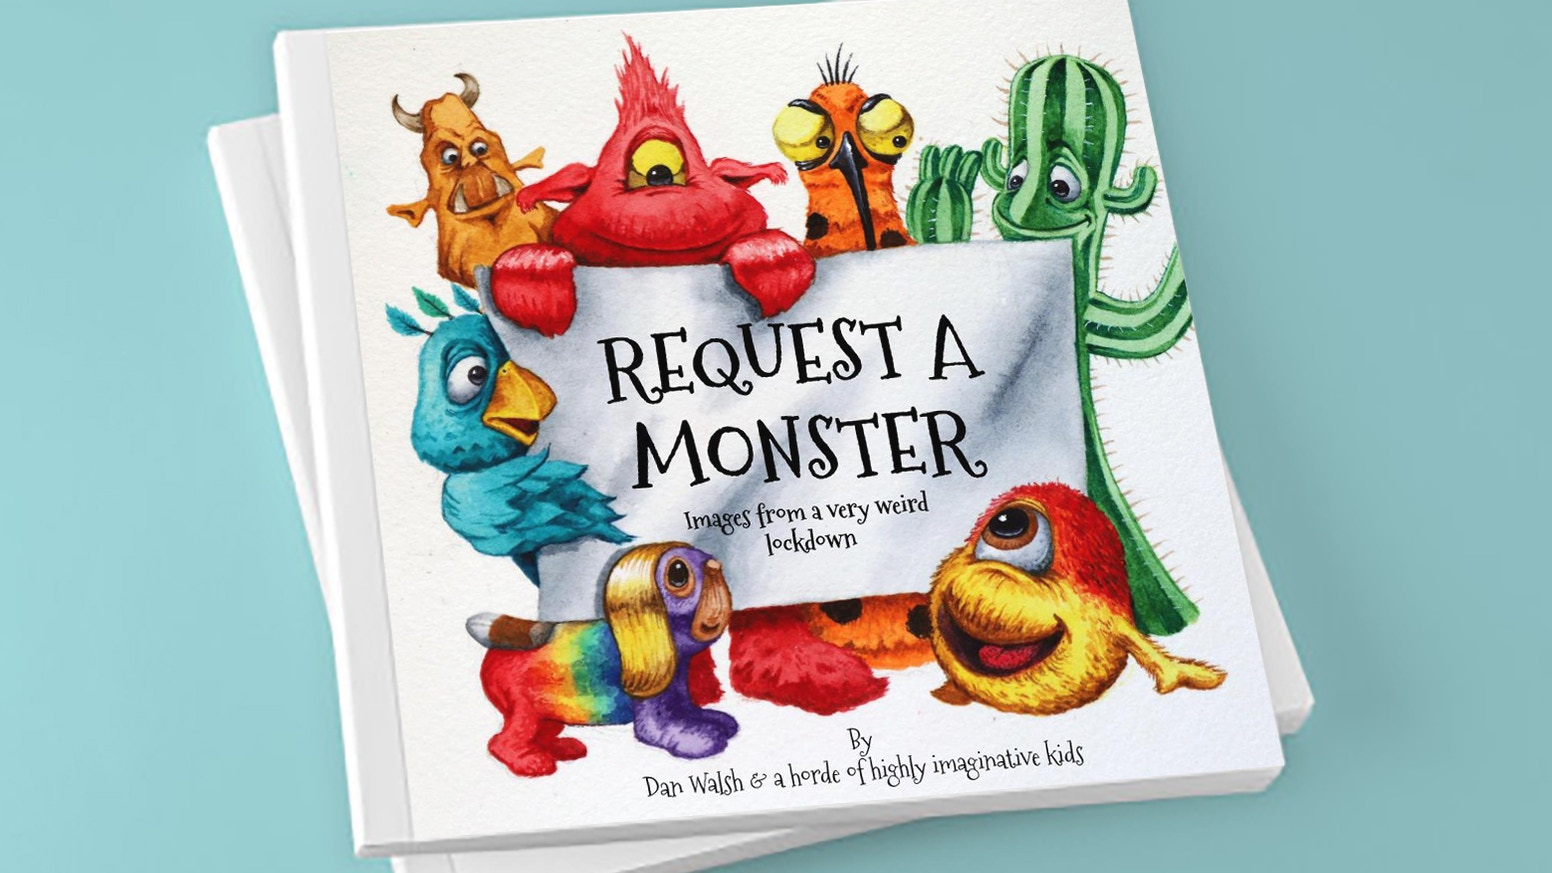 A compendium of weird and wonderful monsters imagined by children and brought to life by Dan Walsh during the COVID 19 lockdown